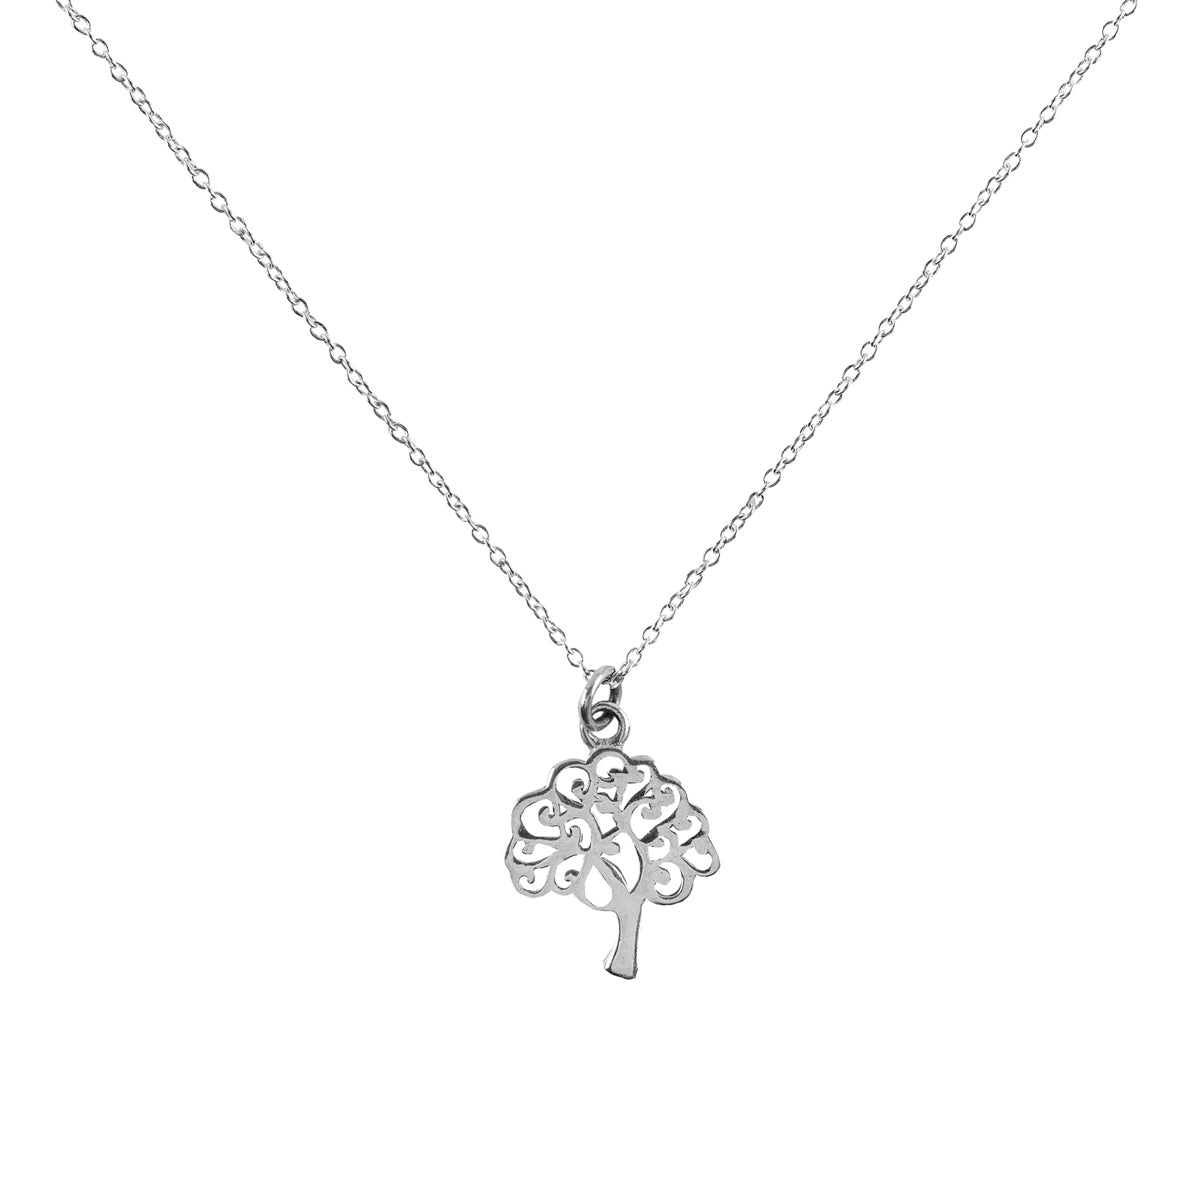 Shanasa Sterling Silver Necklace - Abundance